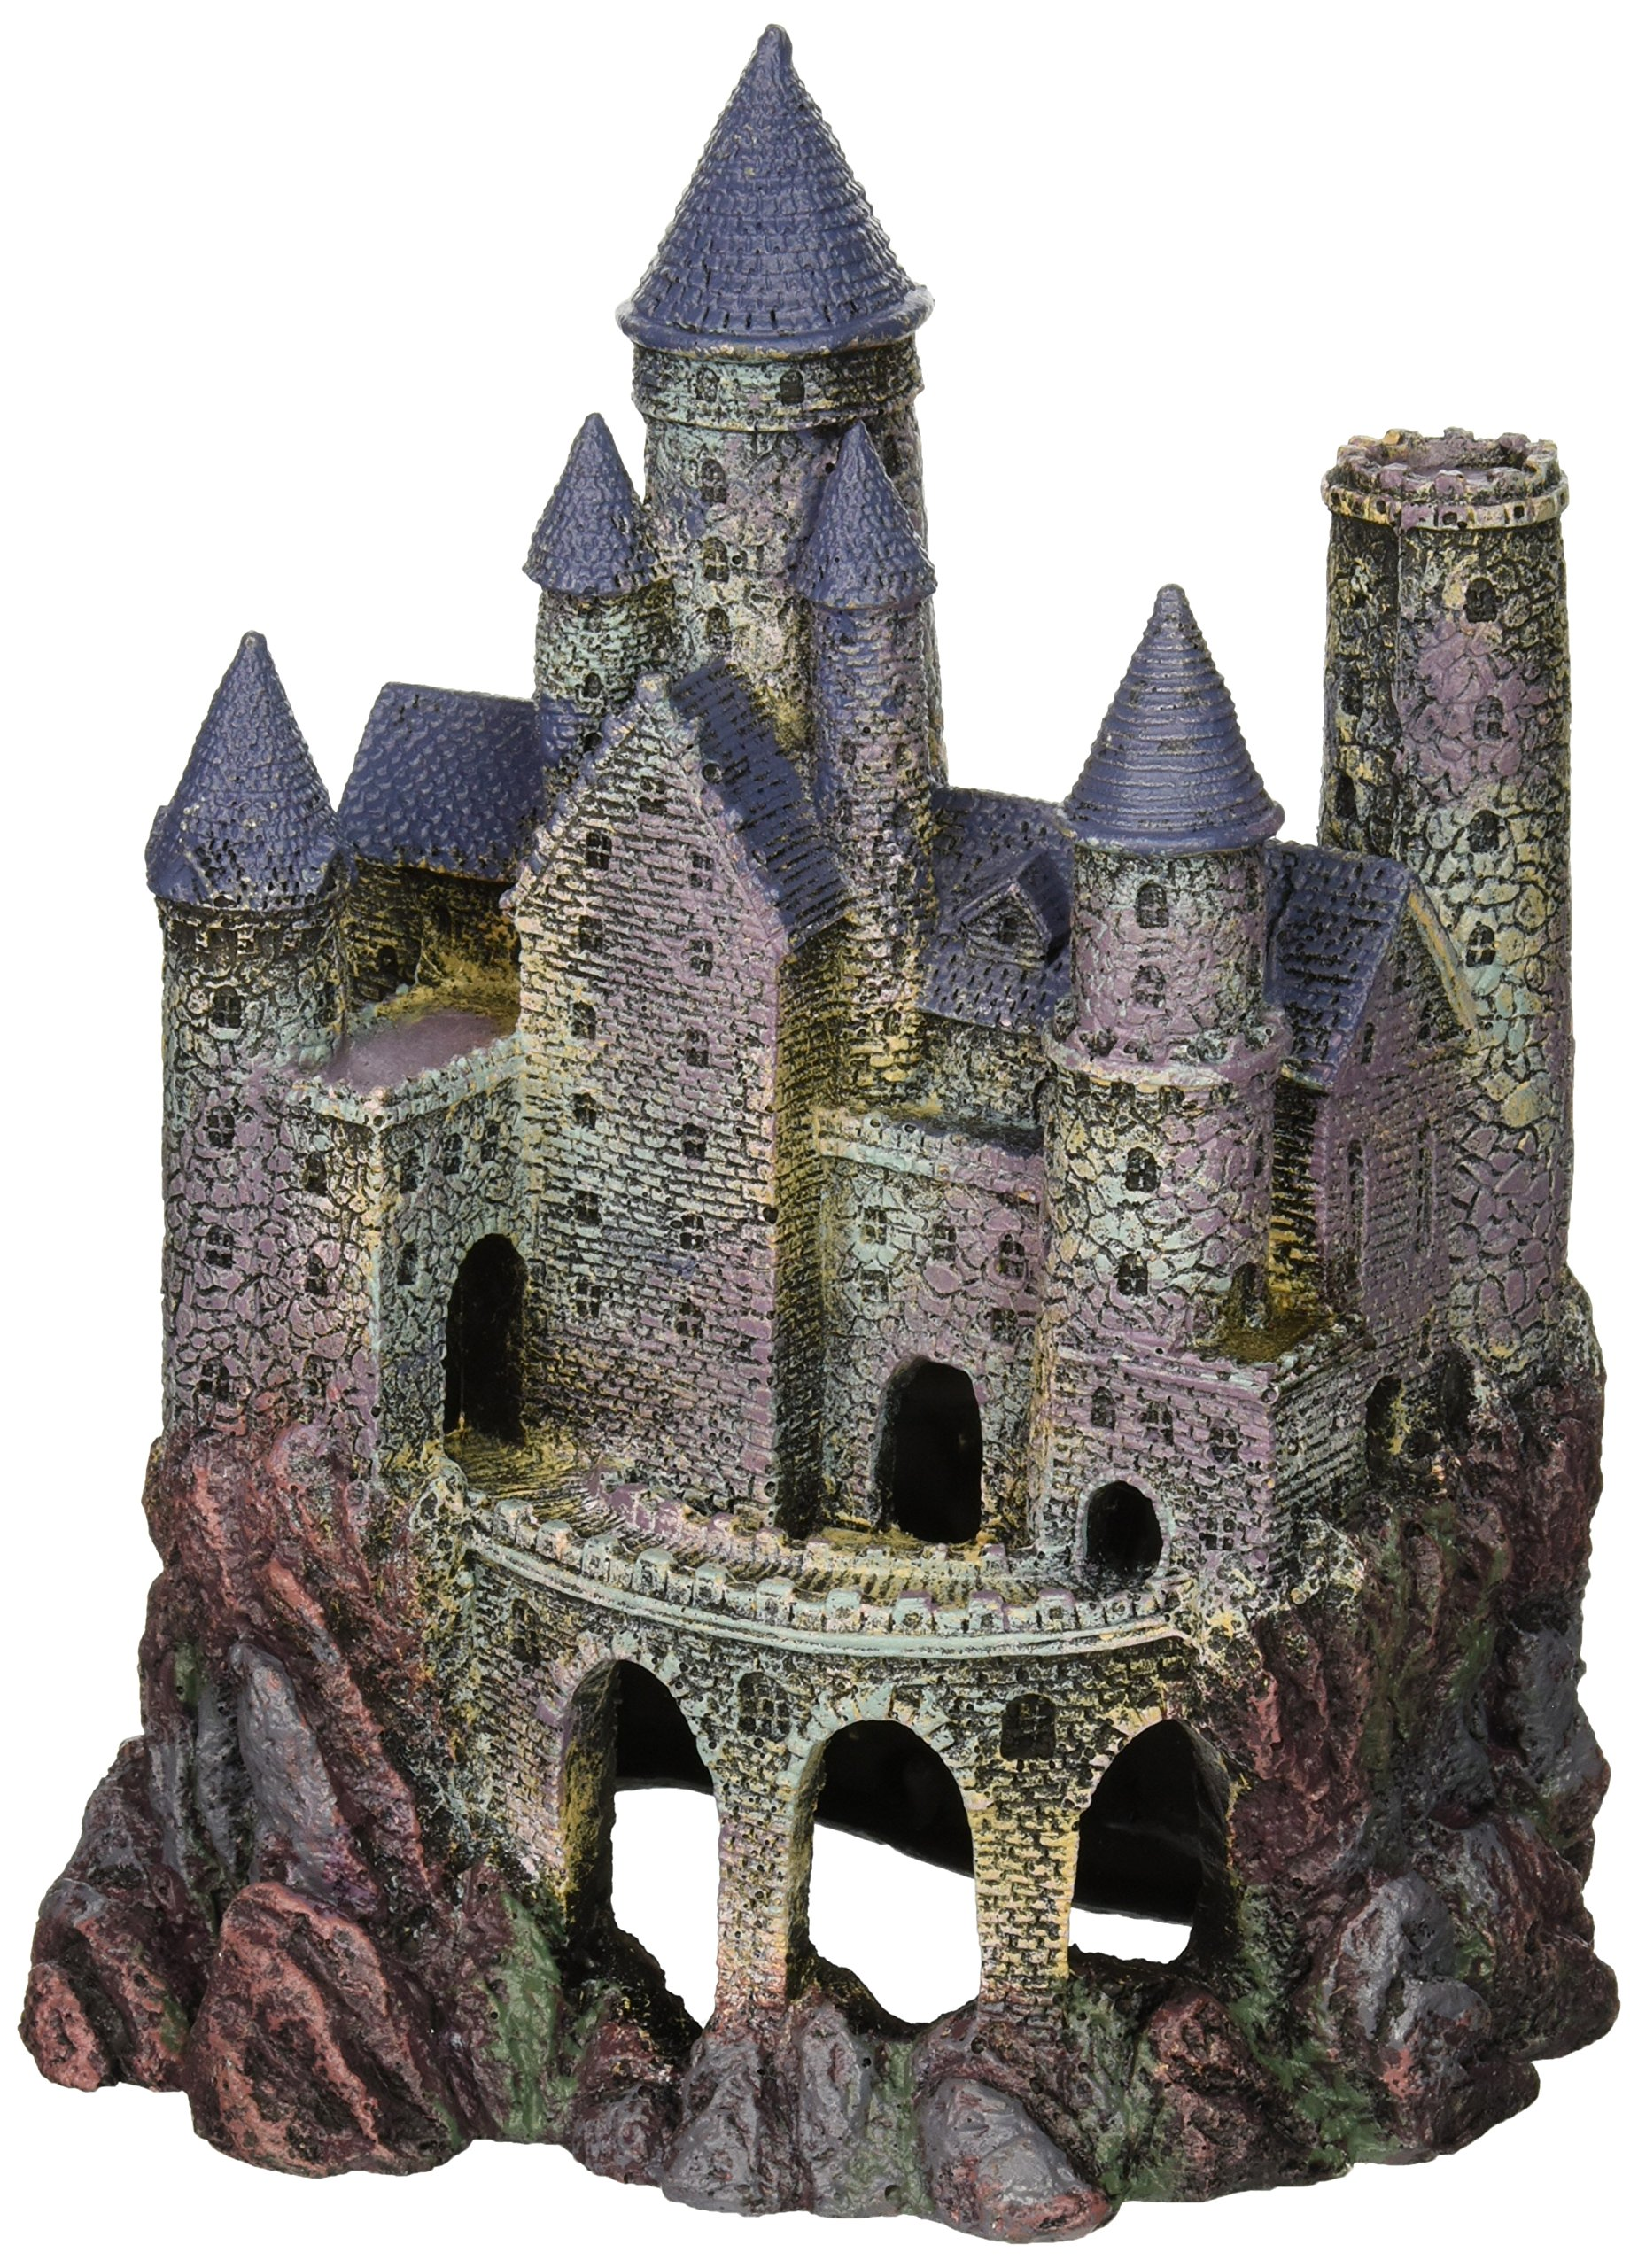 Penn Plax Wizard's Castle Aquarium Decoration Hand Painted with Realistic Details Over 10 Inches High by Penn Plax